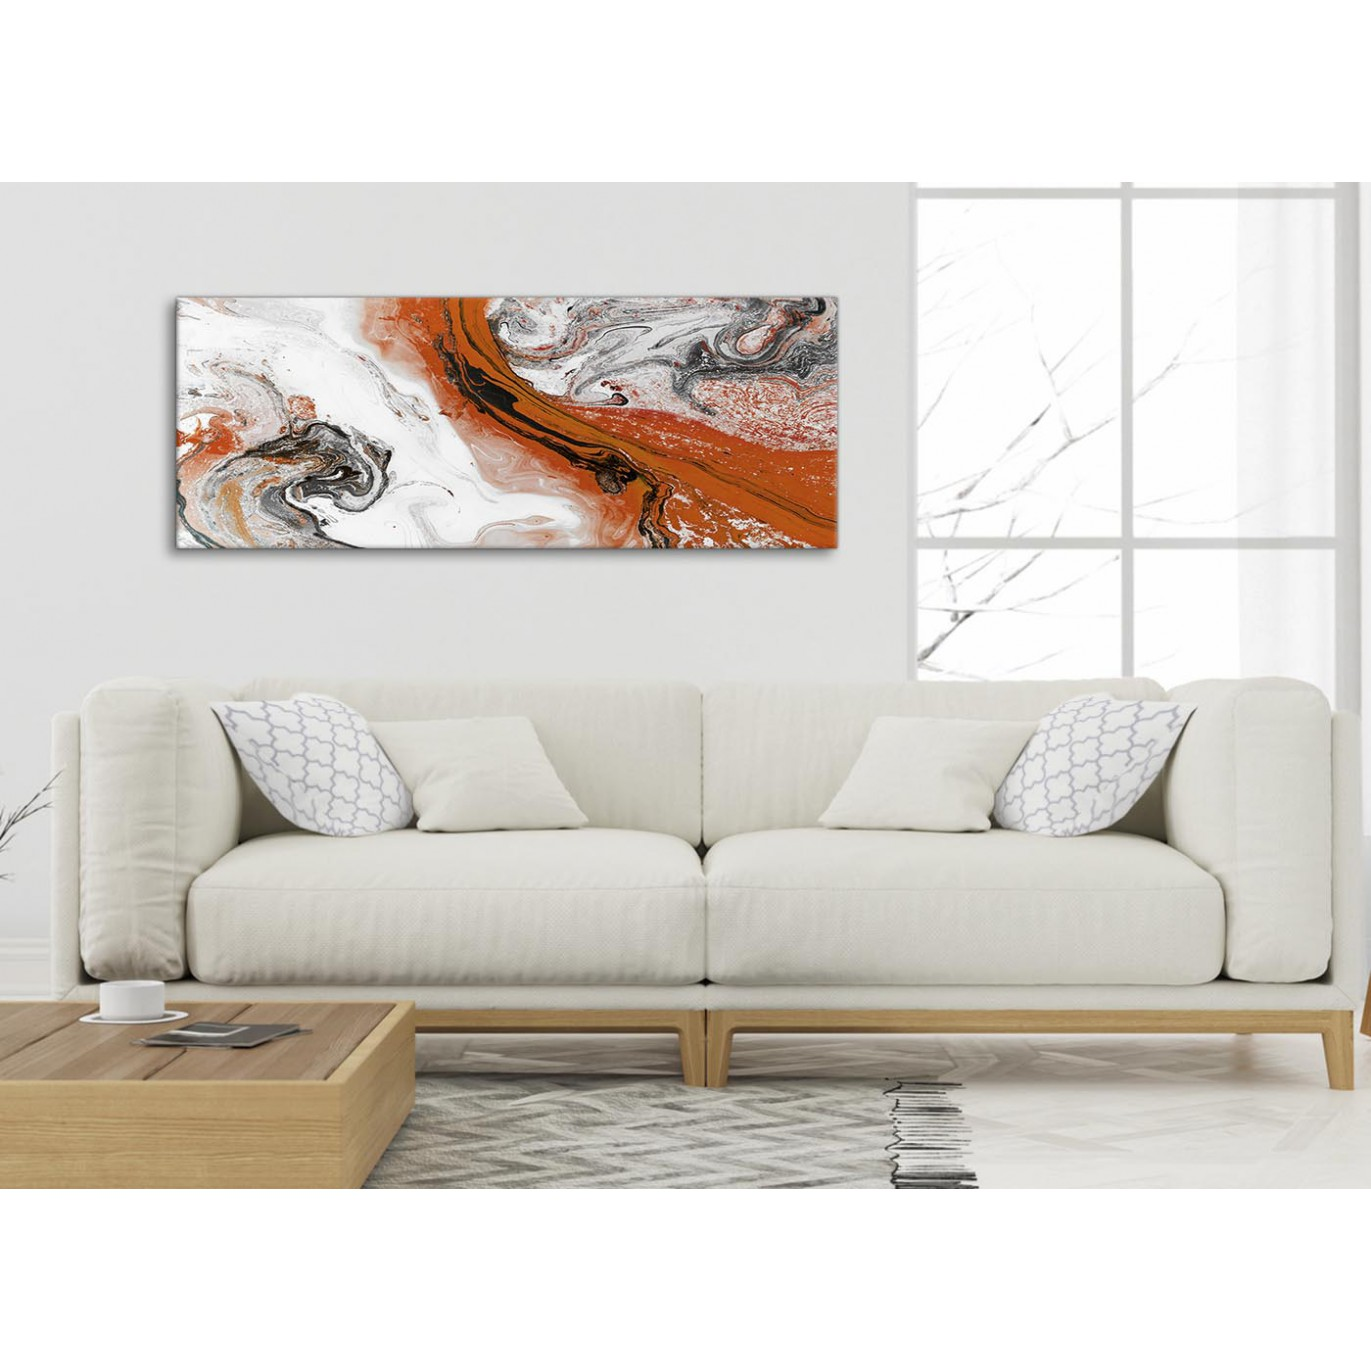 Orange And Grey Swirl Living Room Canvas Wall Art Accessories Abstract Print